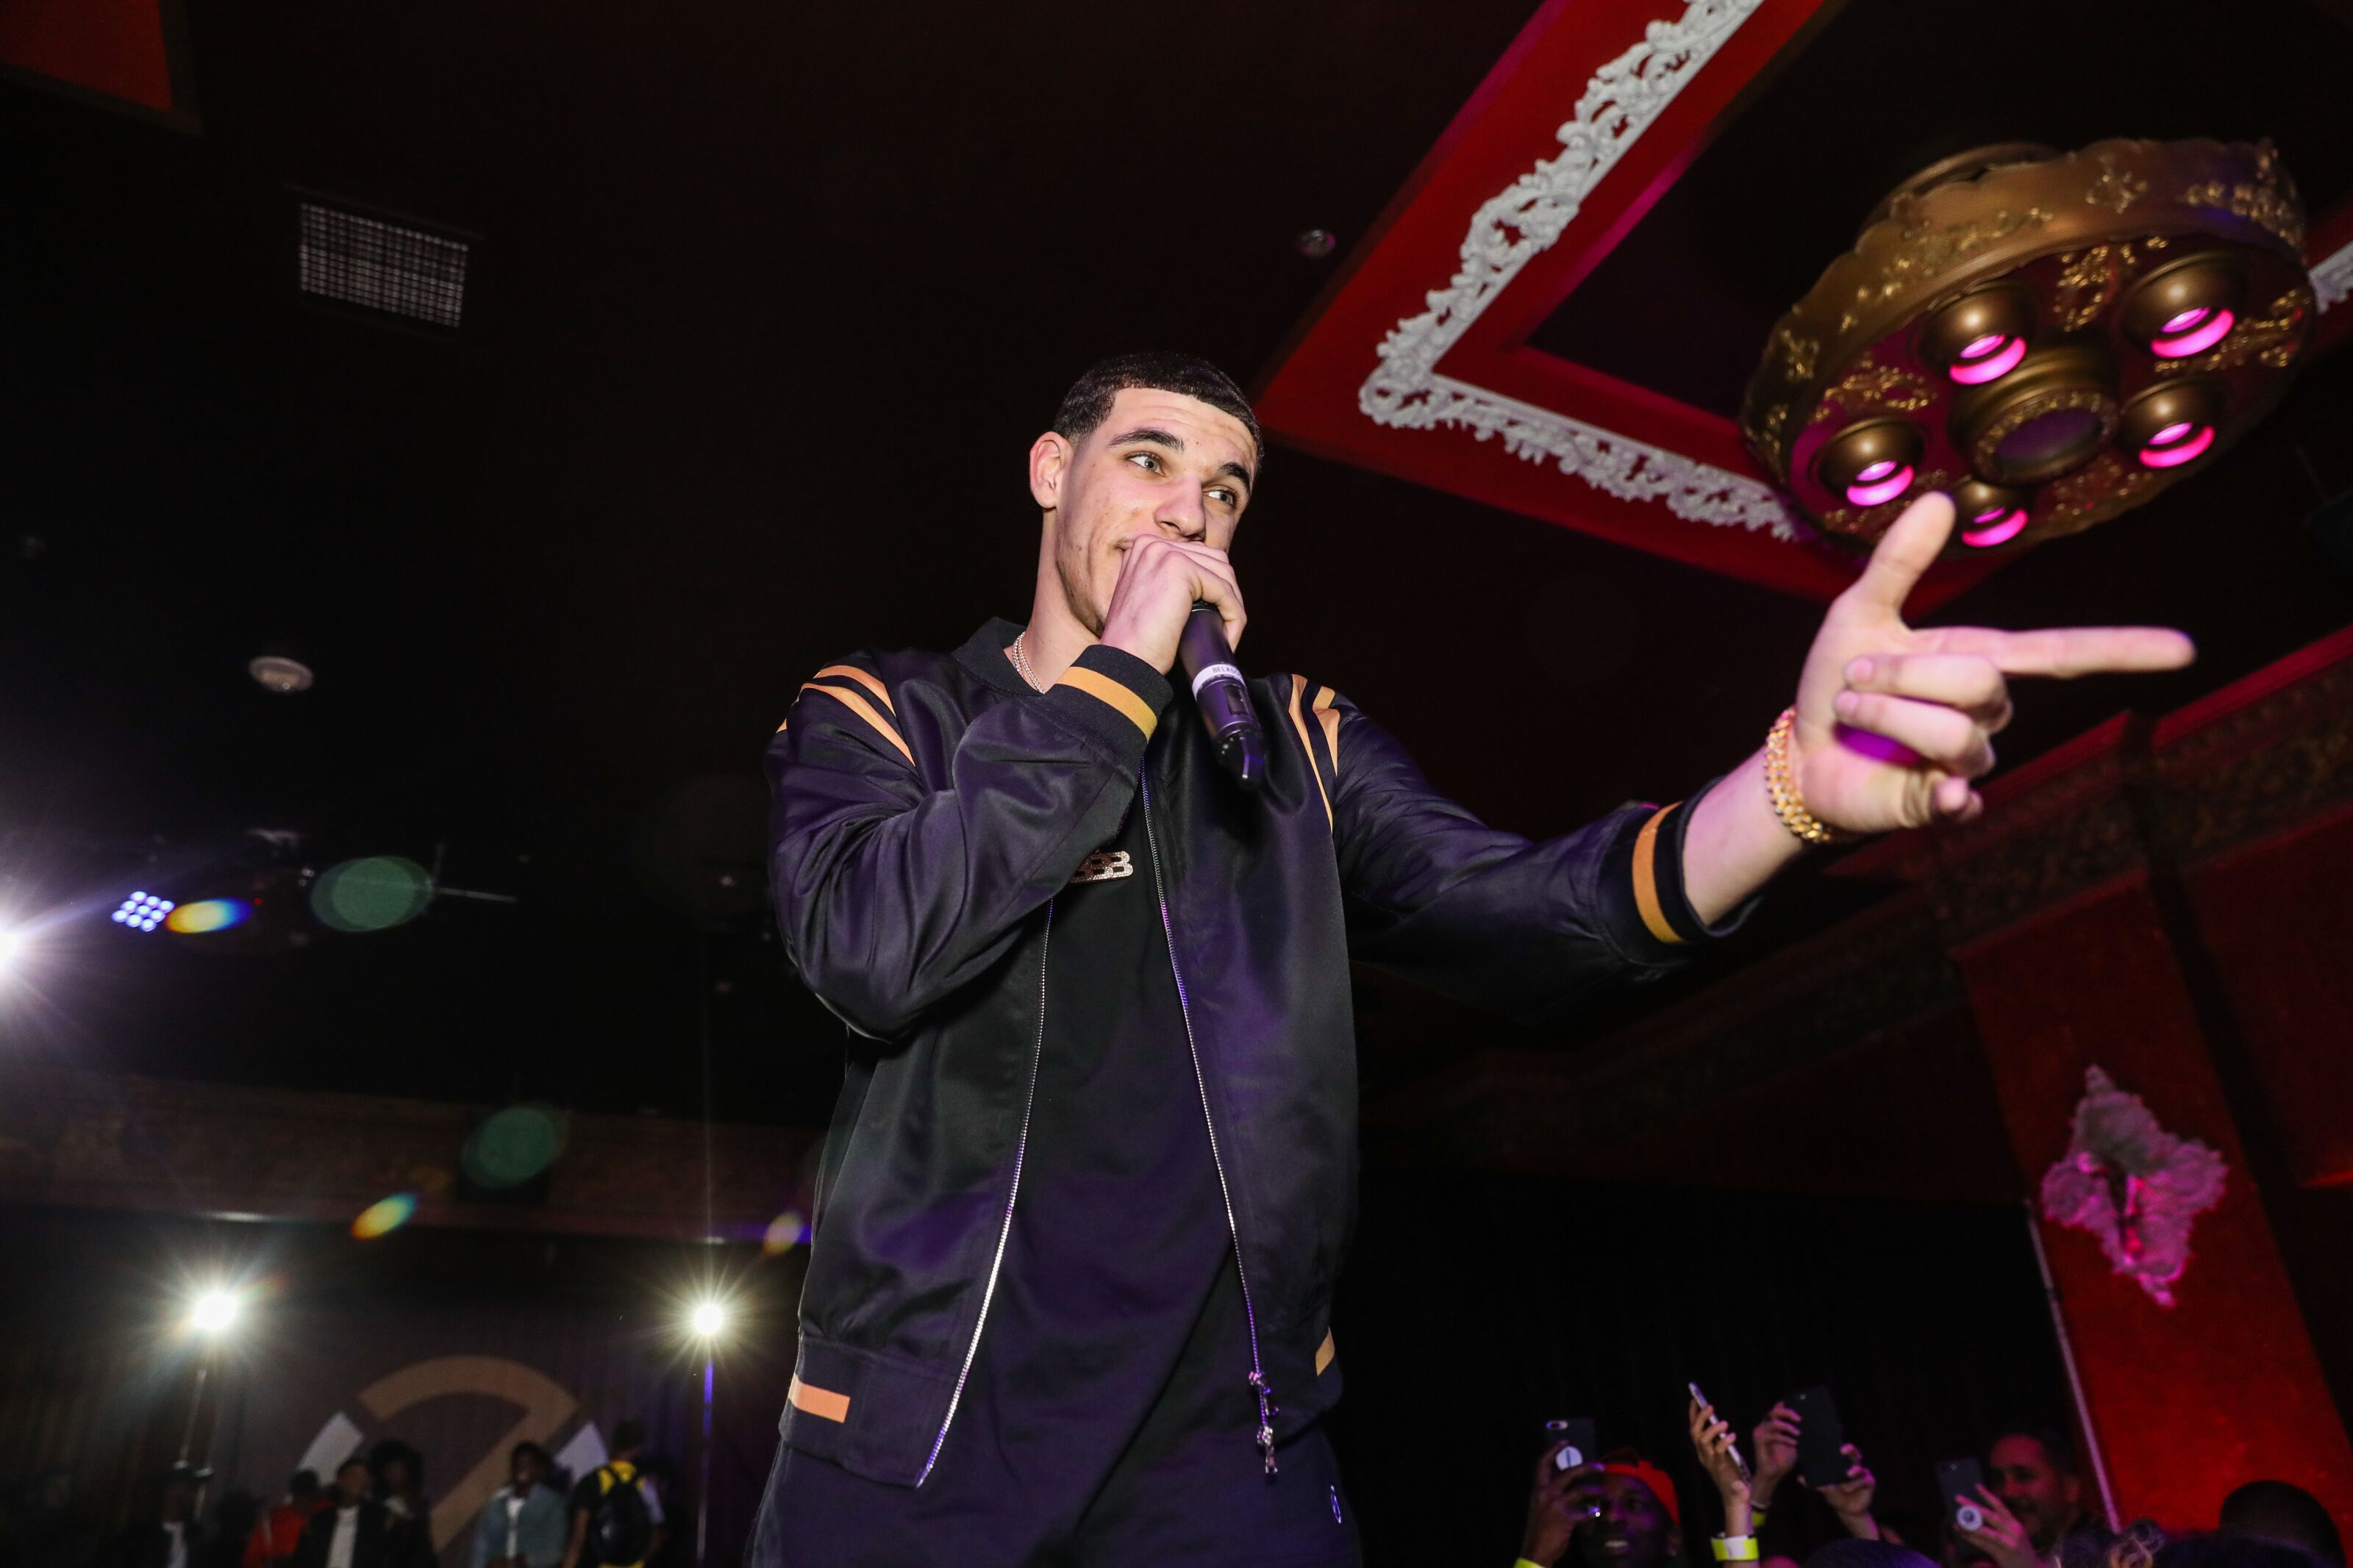 Lonzo Ball: Is the Big Baller Brand business going bad?